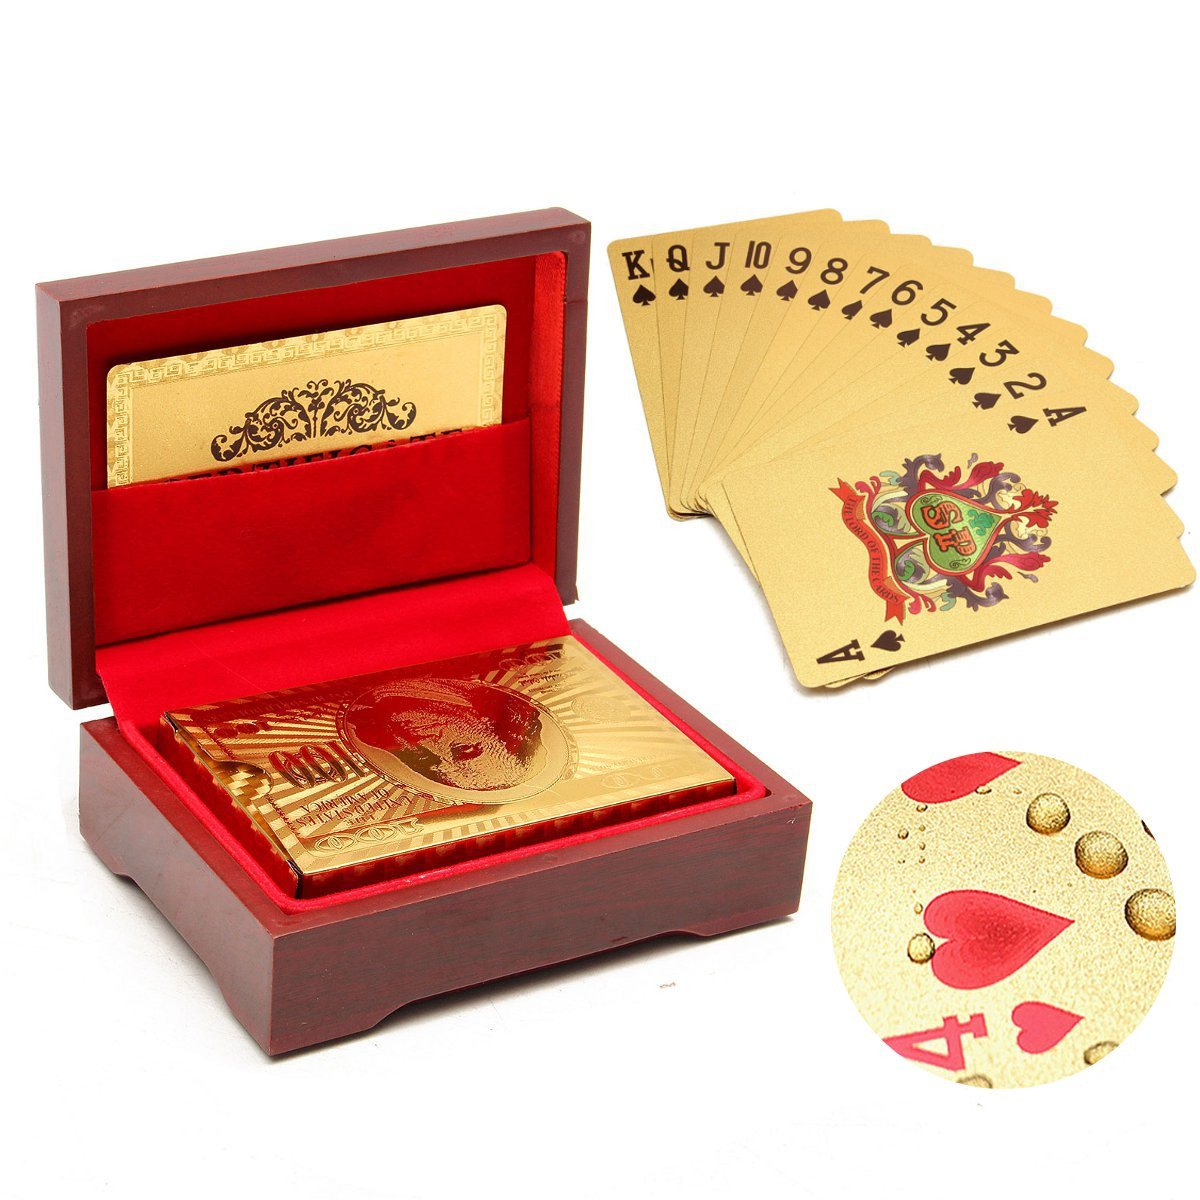 Waterproof 1 Set Gold Poker Cards With Red Box Perfect for Birthday Gift Anniversary Celebrations Fun Family Games Playing Card